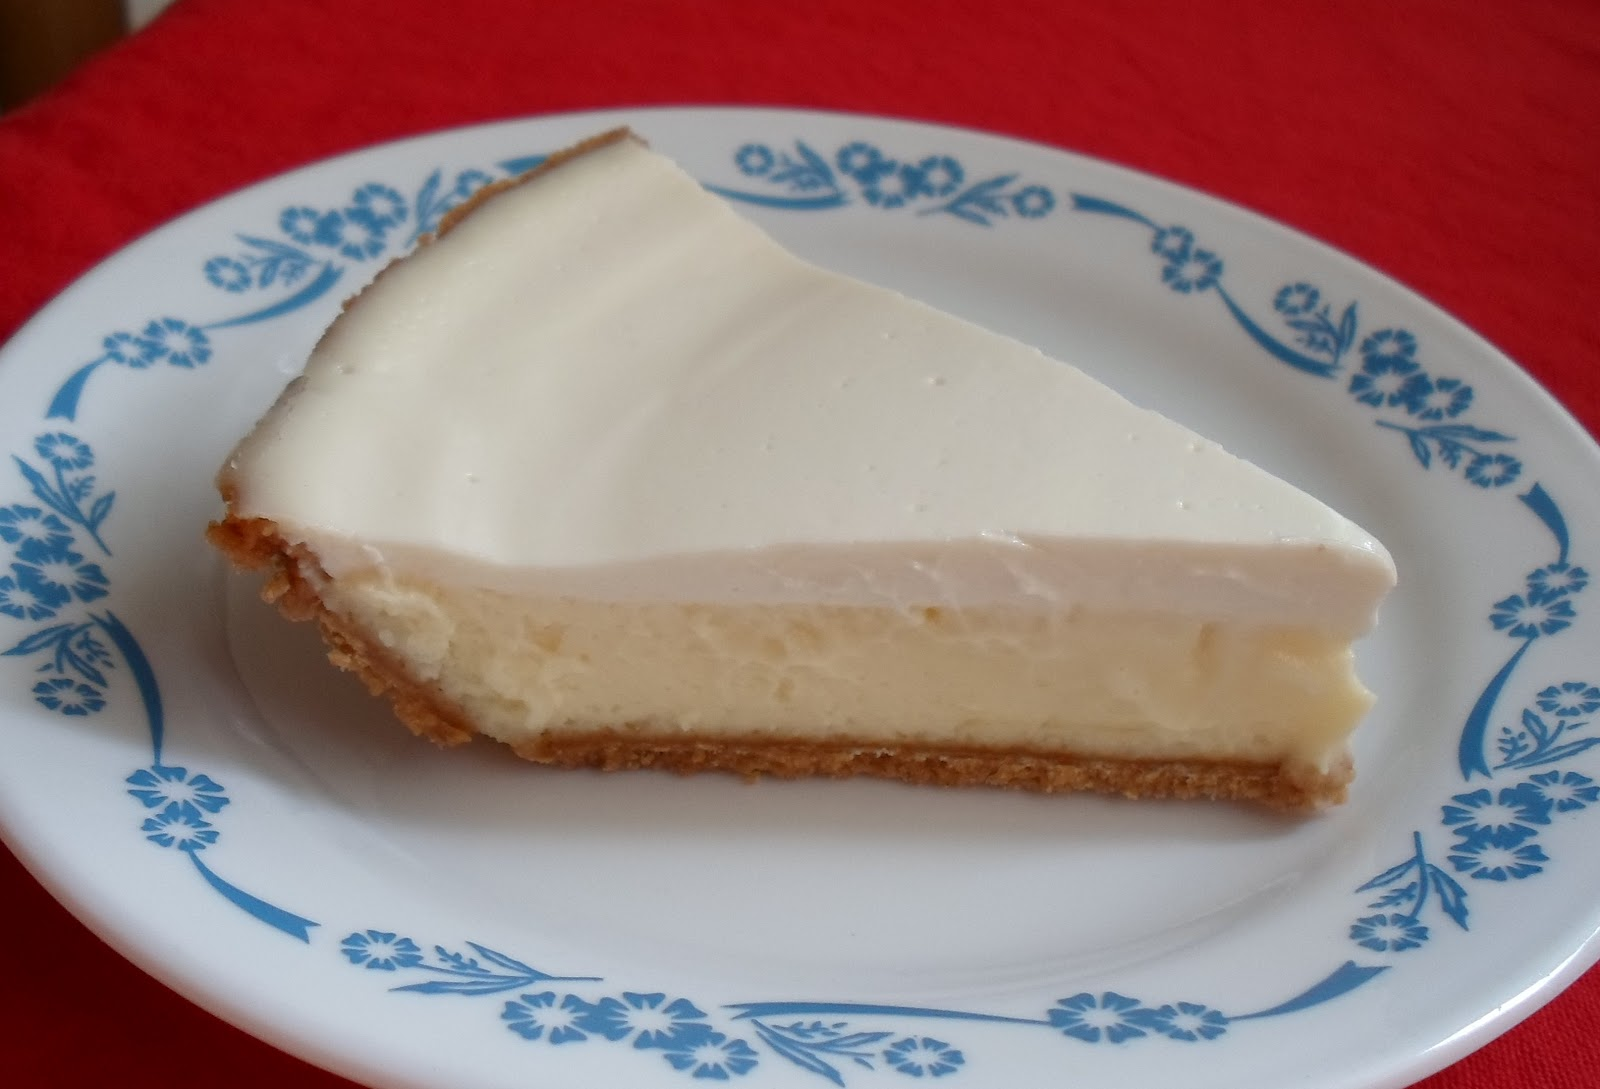 Happier Than A Pig In Mud: Small Cheesecake